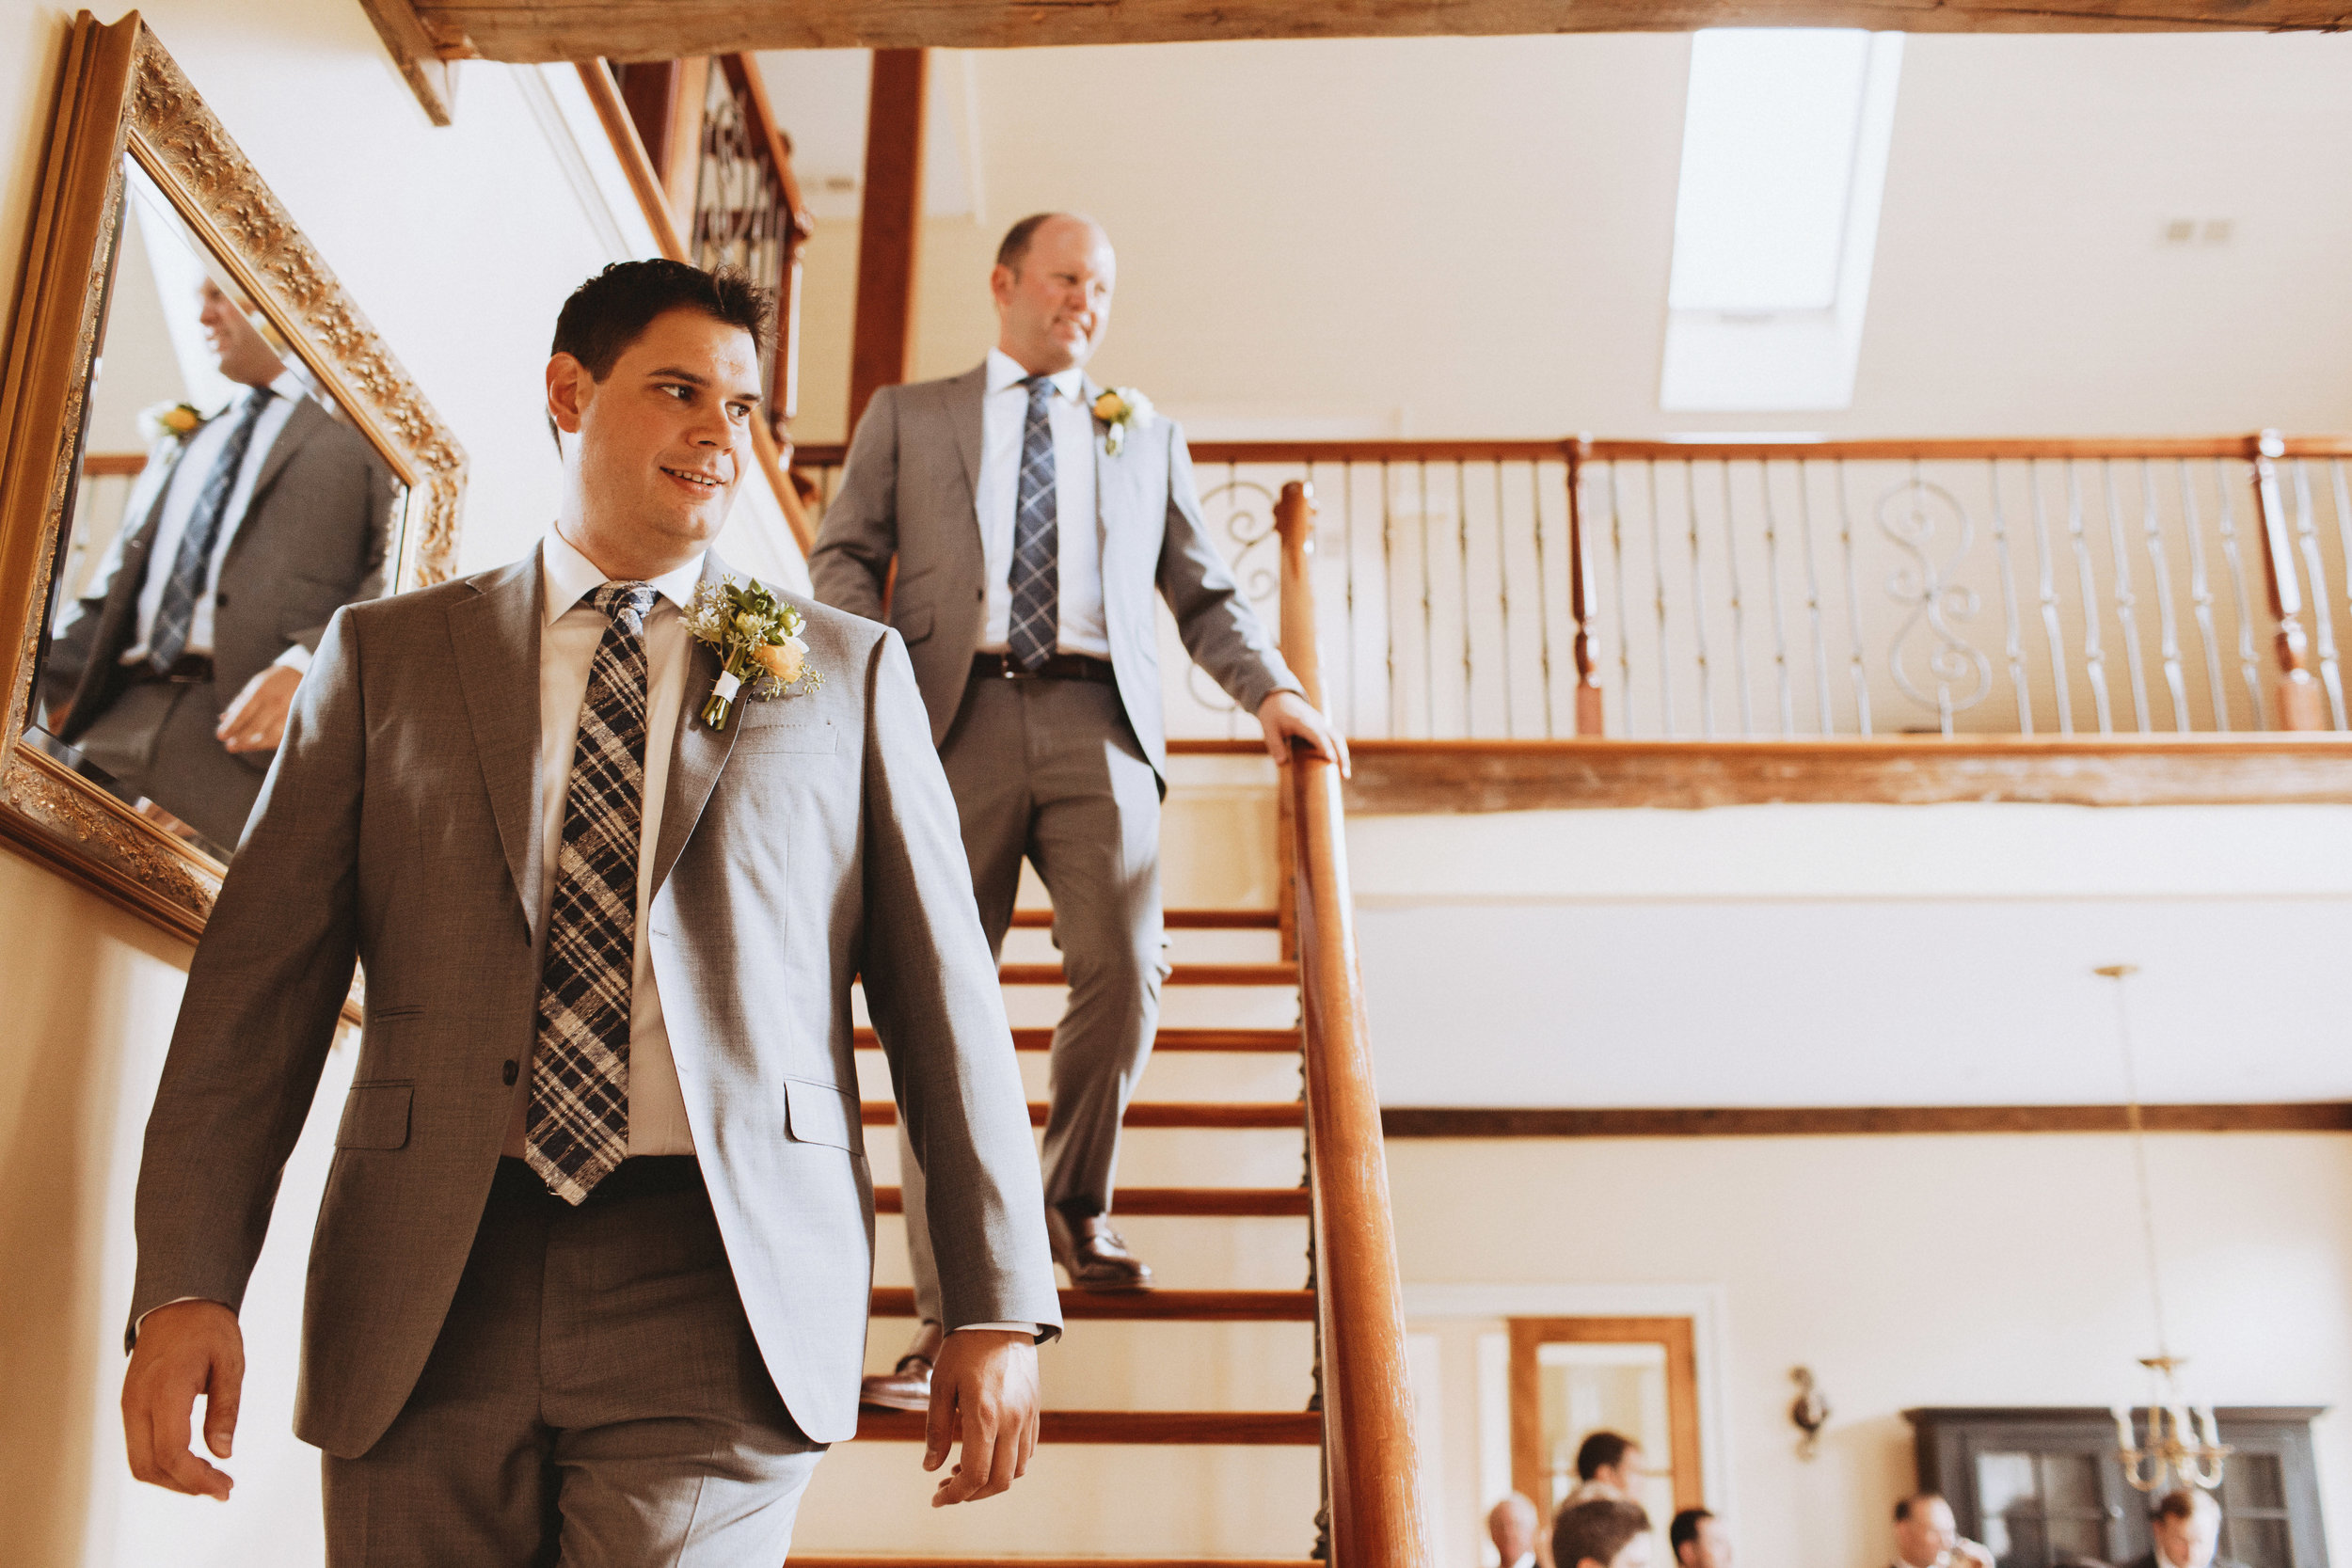 two grooms at their wedding heading downstairs to greet guests